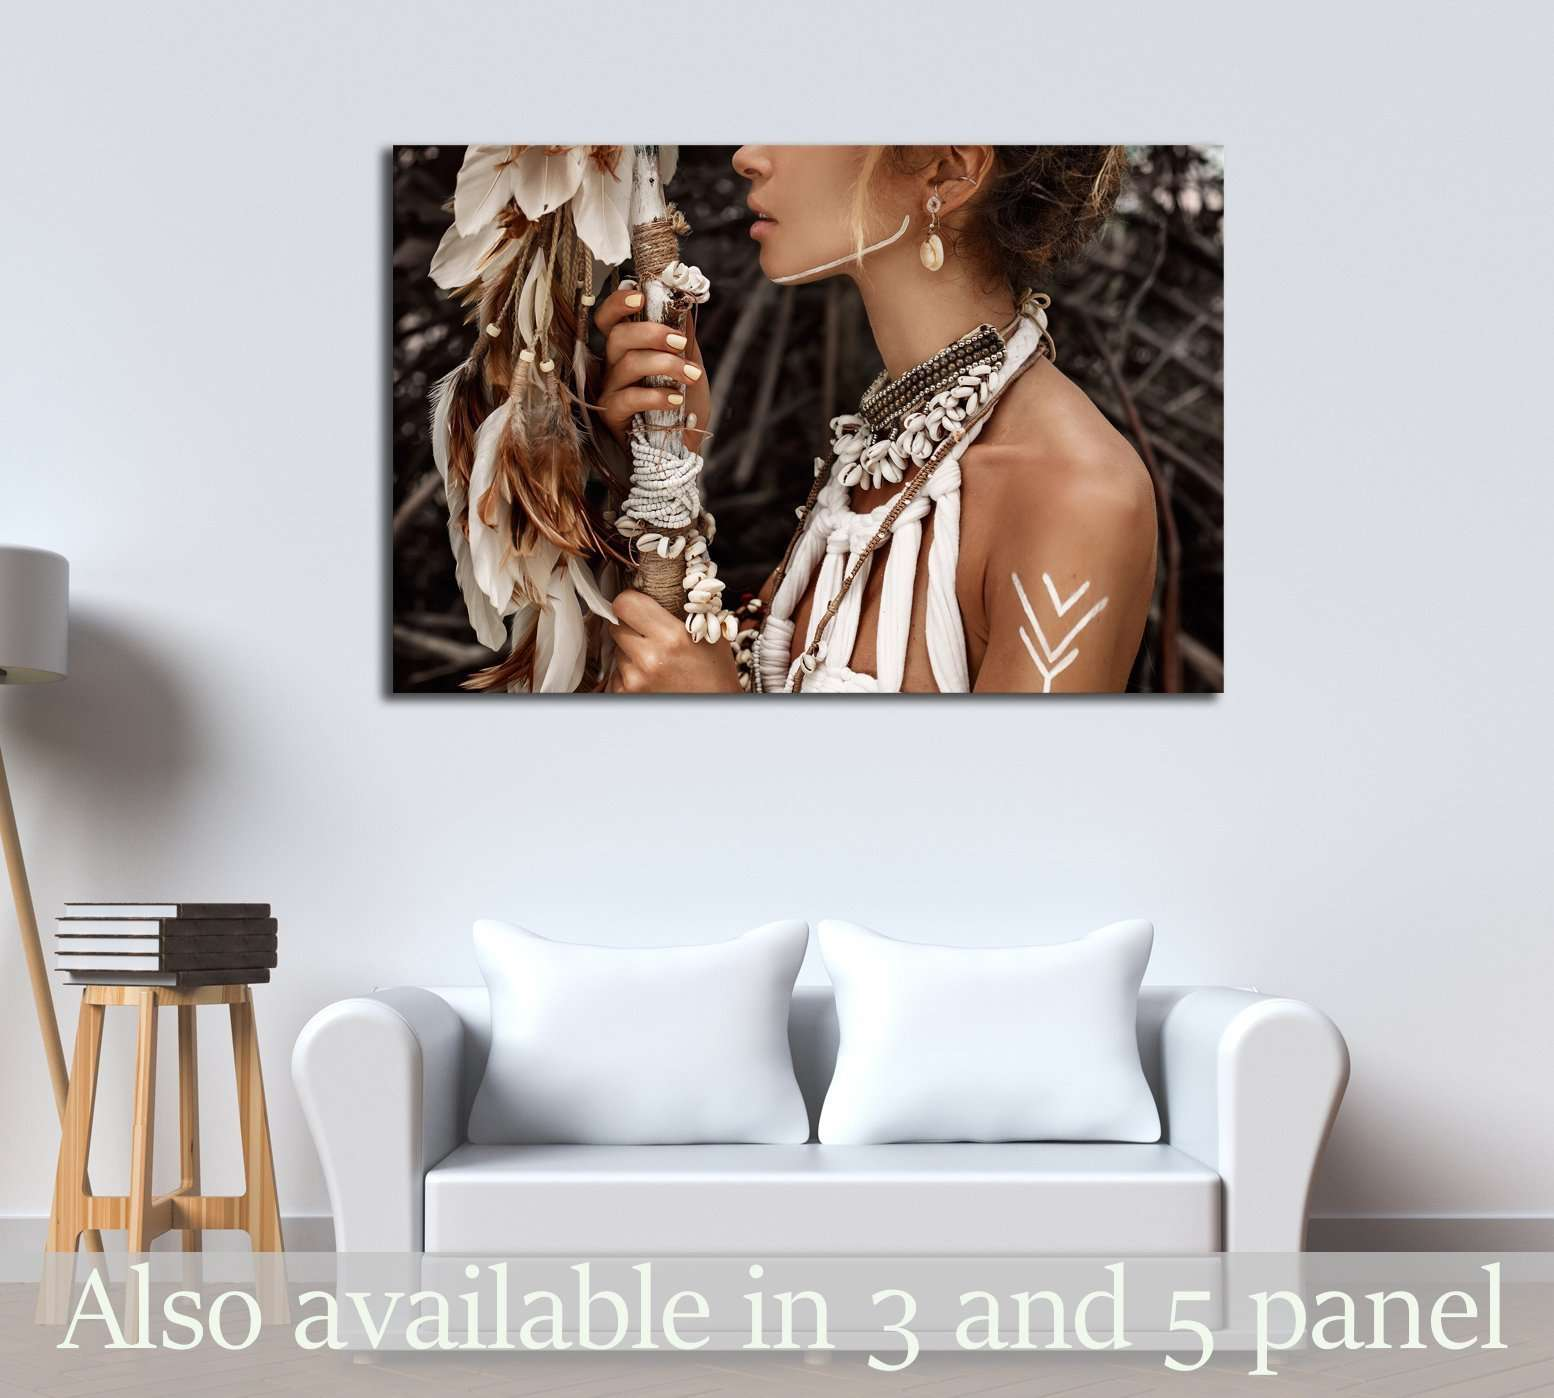 Attractive wild boho woman close up portrait №2767 Ready to Hang Canvas Print